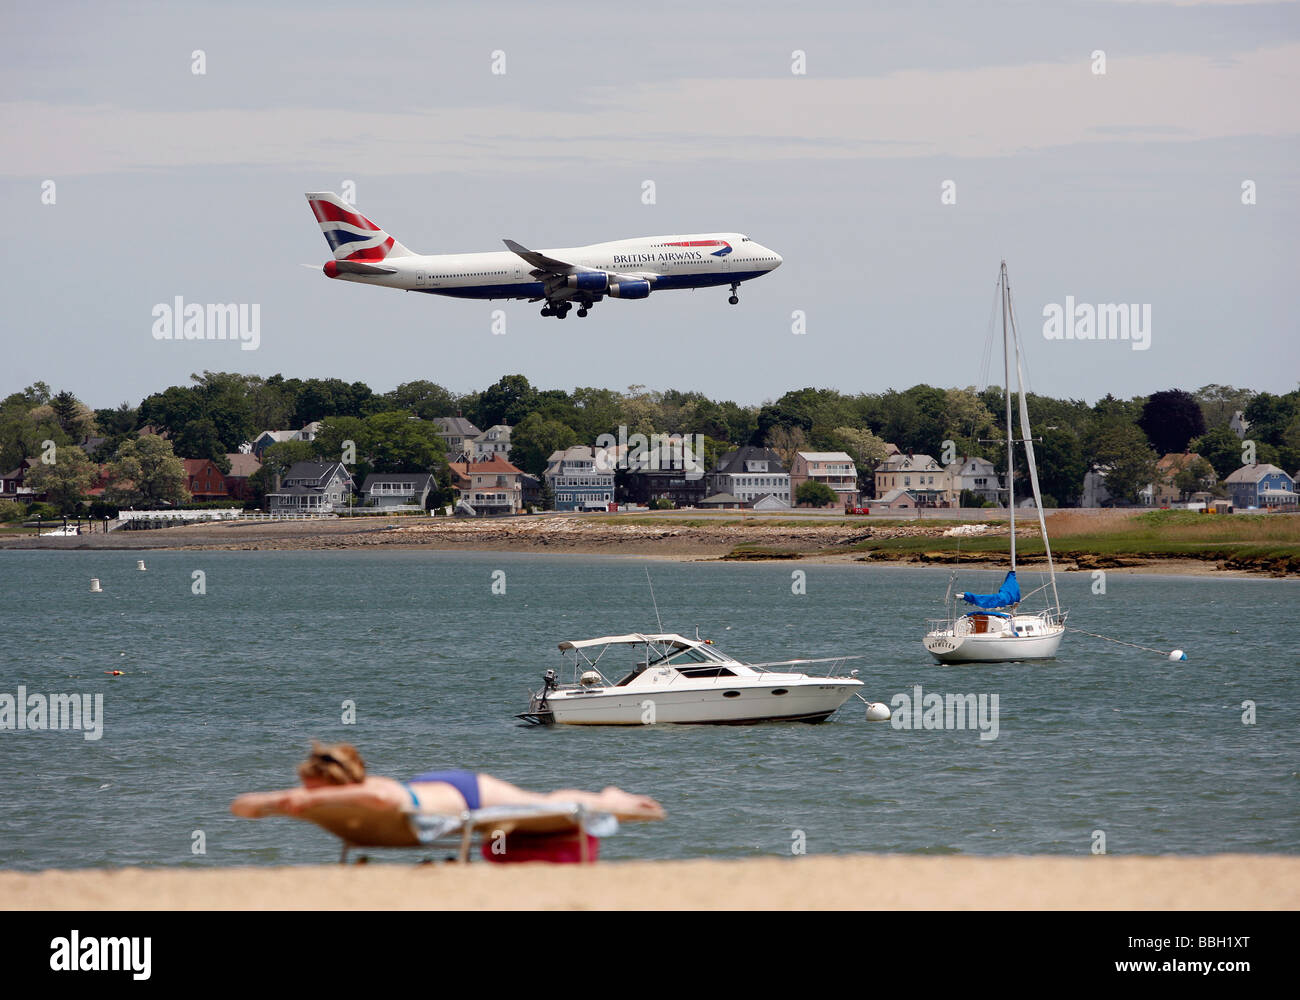 A British Airways 747 lands at Logan International Airport, Boston - Stock Image